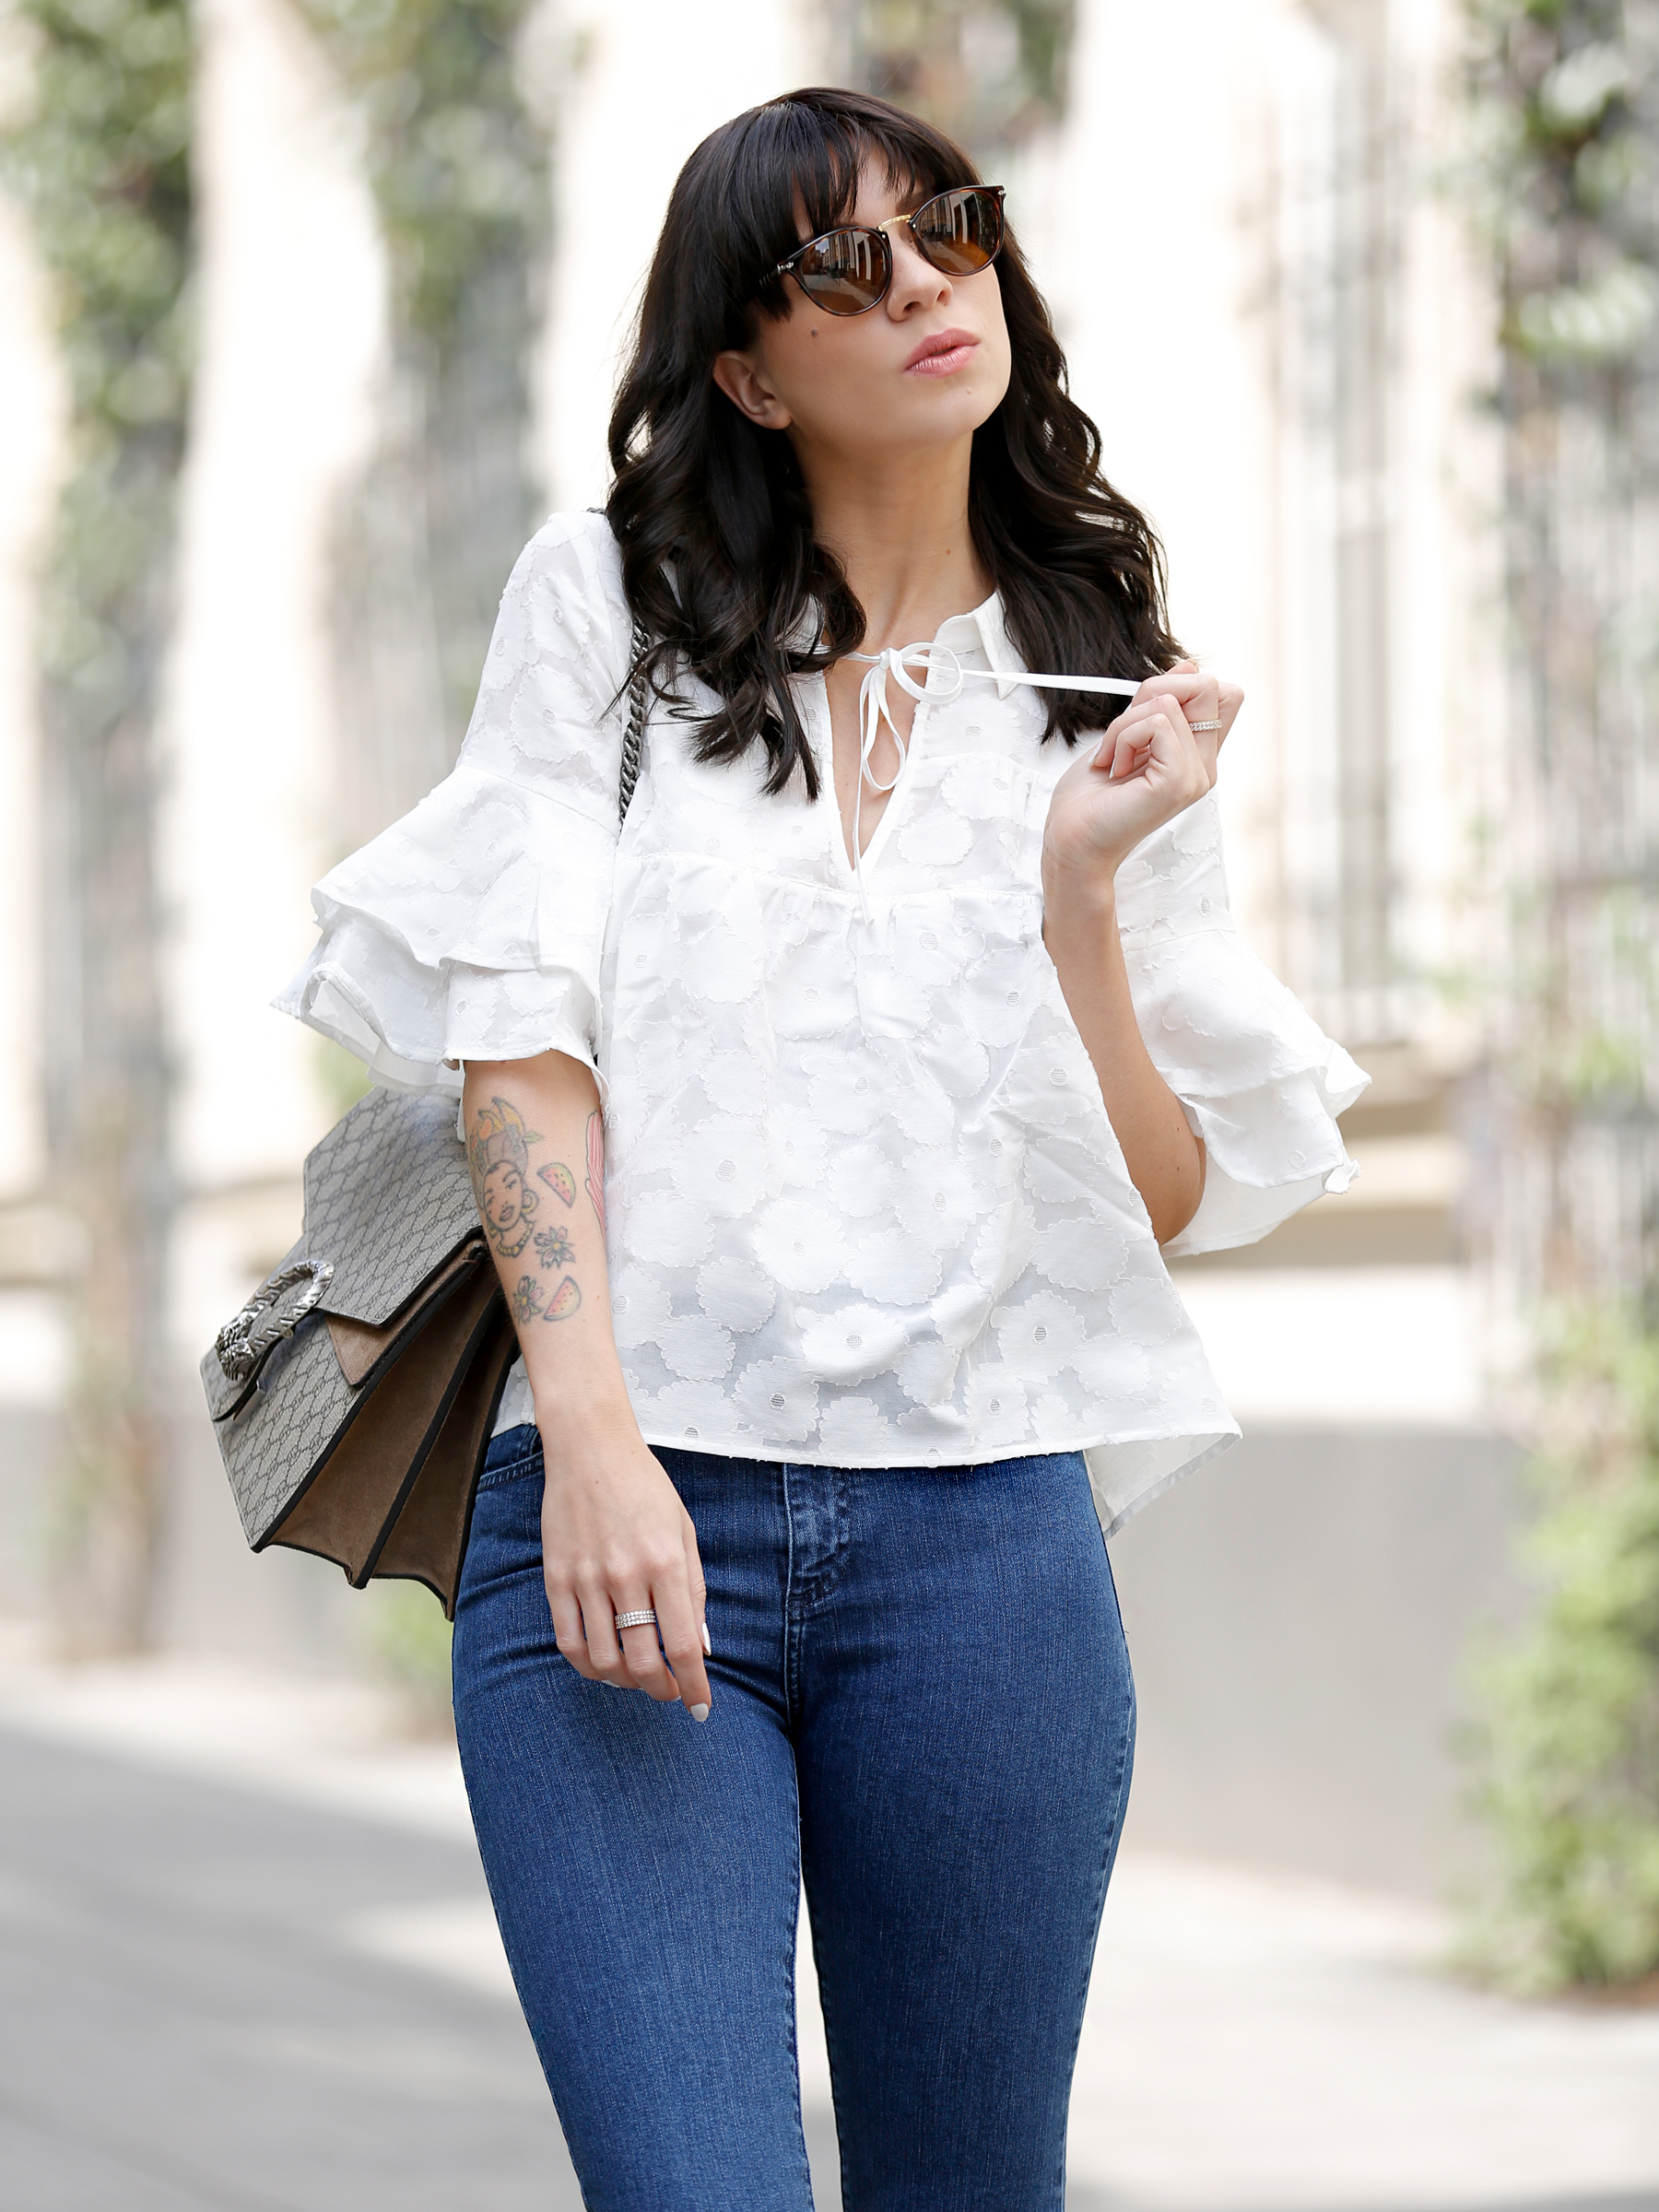 outfit spring summer minimal blue white clean bangs brunette girl cute french parisienne mango fringe jeans denim white blouse shopbop soludos espadrilles gucci dionysus bag luxury fashion modeblog germany ricarda schernus fashionblogger 6